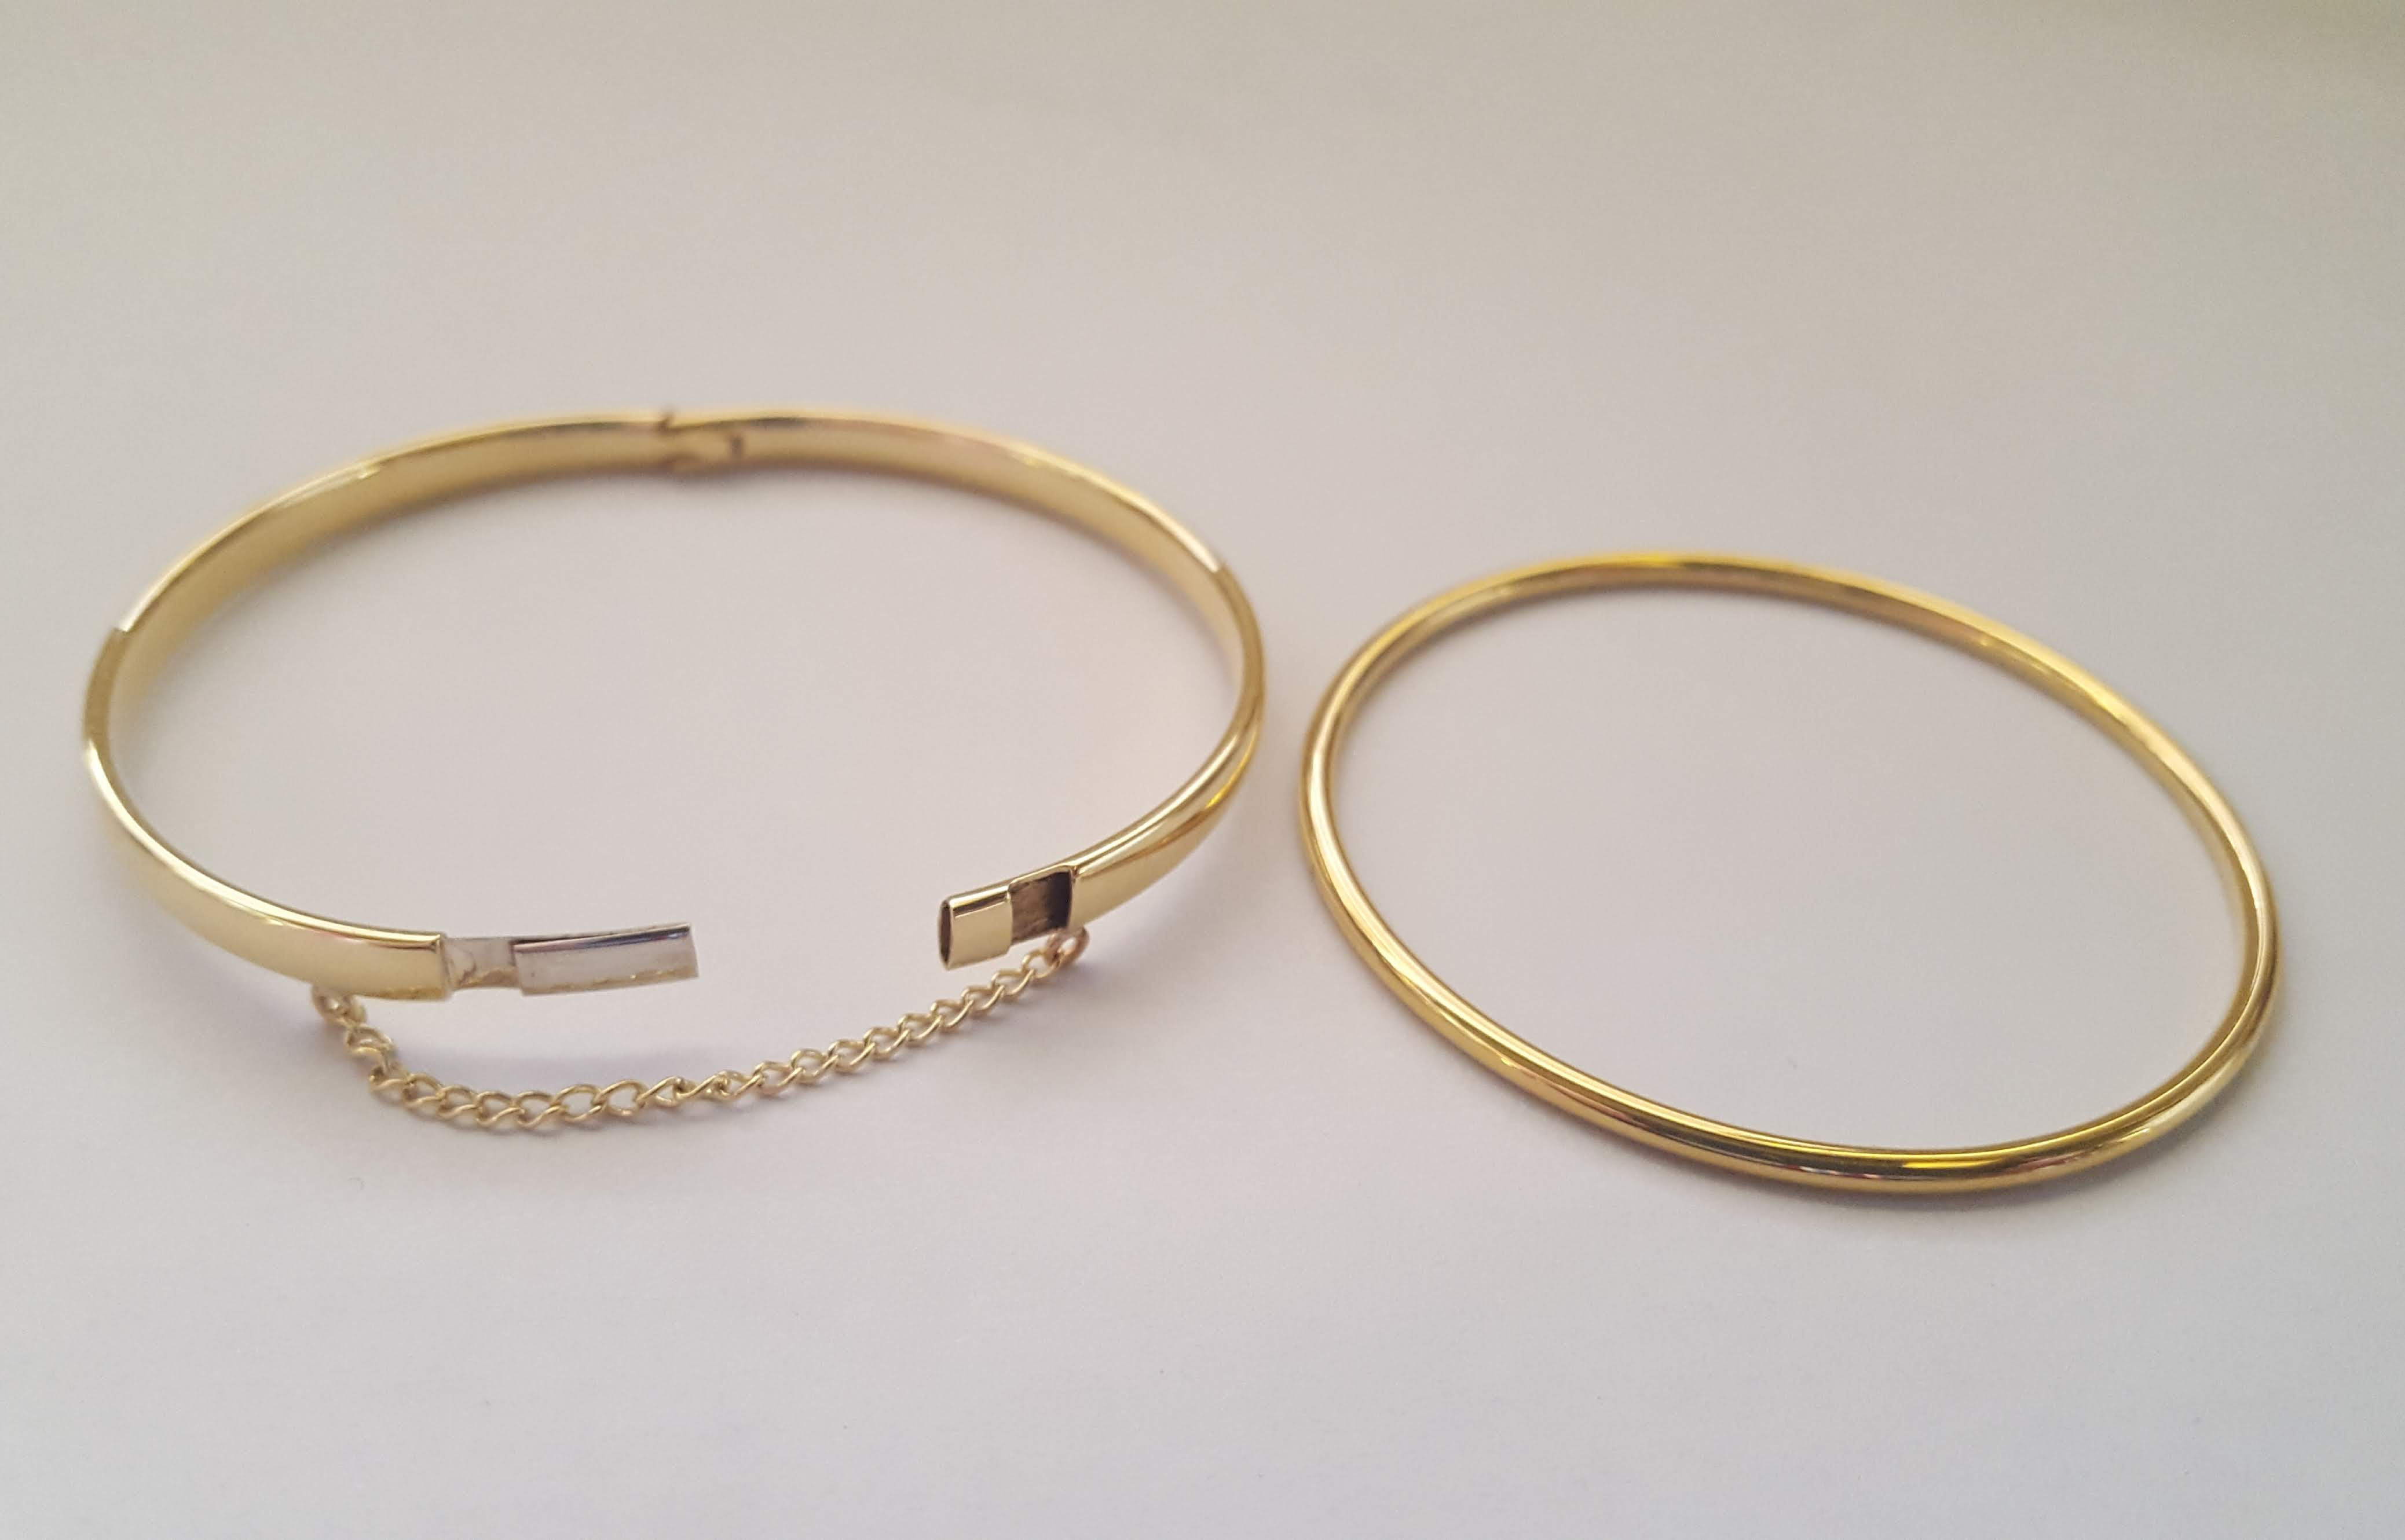 9ct gold baby bangles comparison